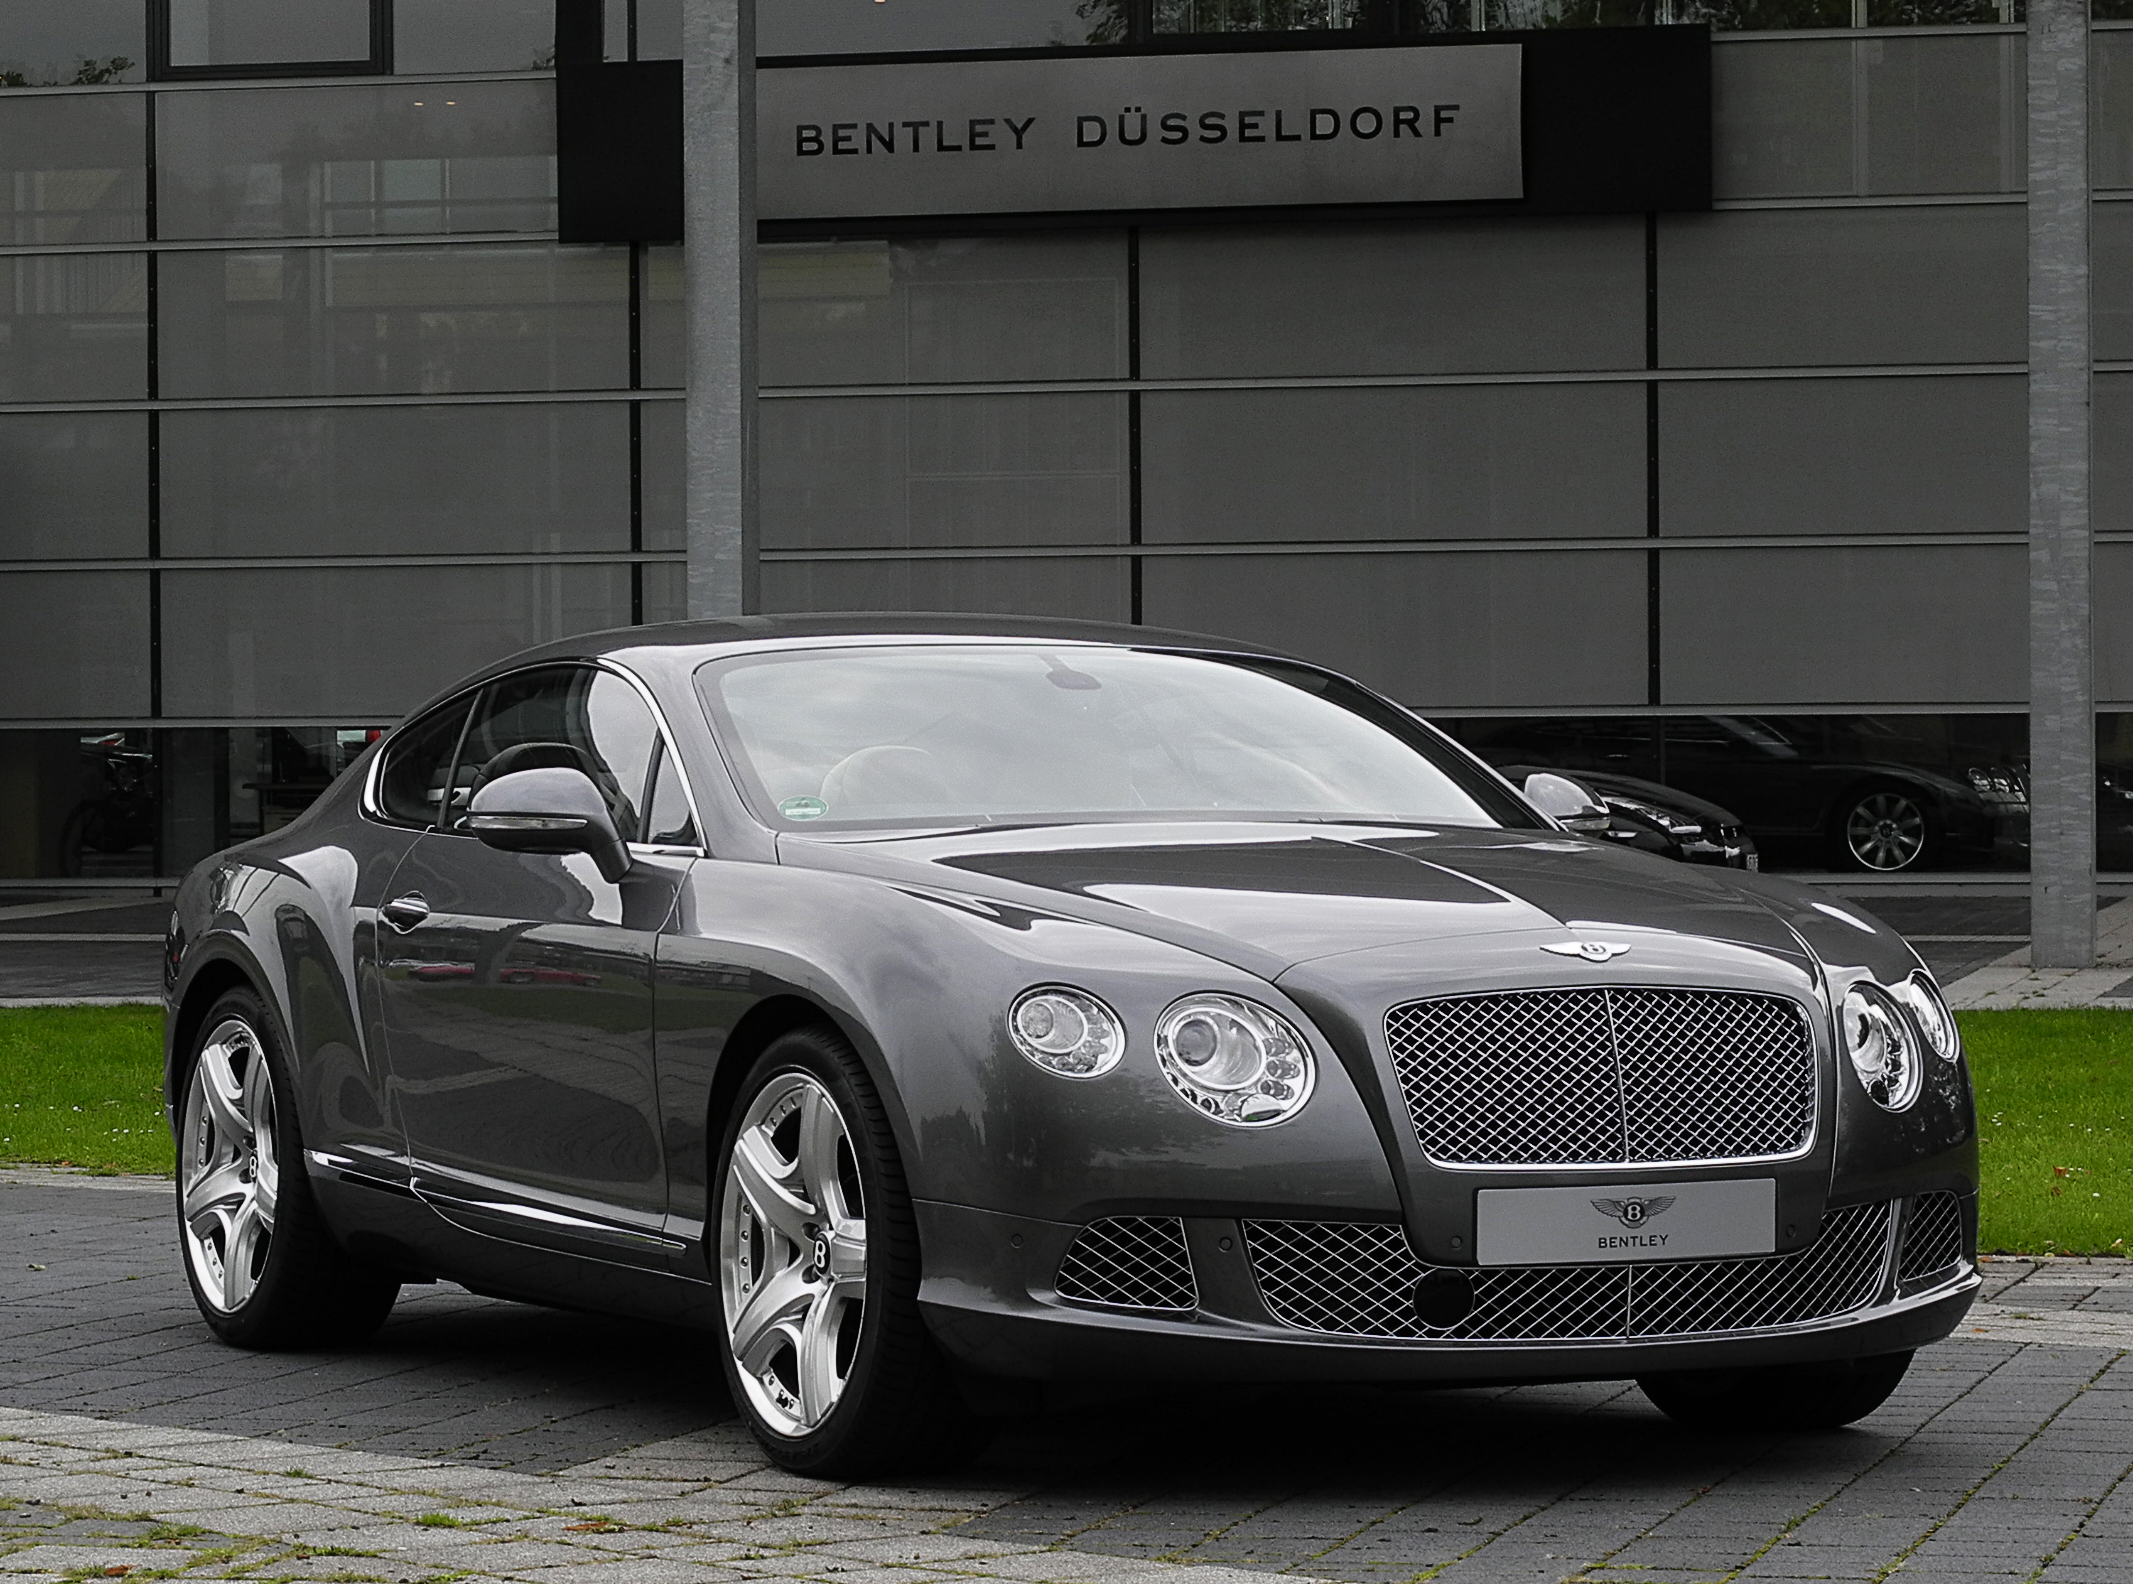 http://upload.wikimedia.org/wikipedia/commons/7/7f/Bentley_Continental_GT_%28II%29_%E2%80%93_Frontansicht_%281%29%2C_30._August_2011%2C_D%C3%BCsseldorf.jpg